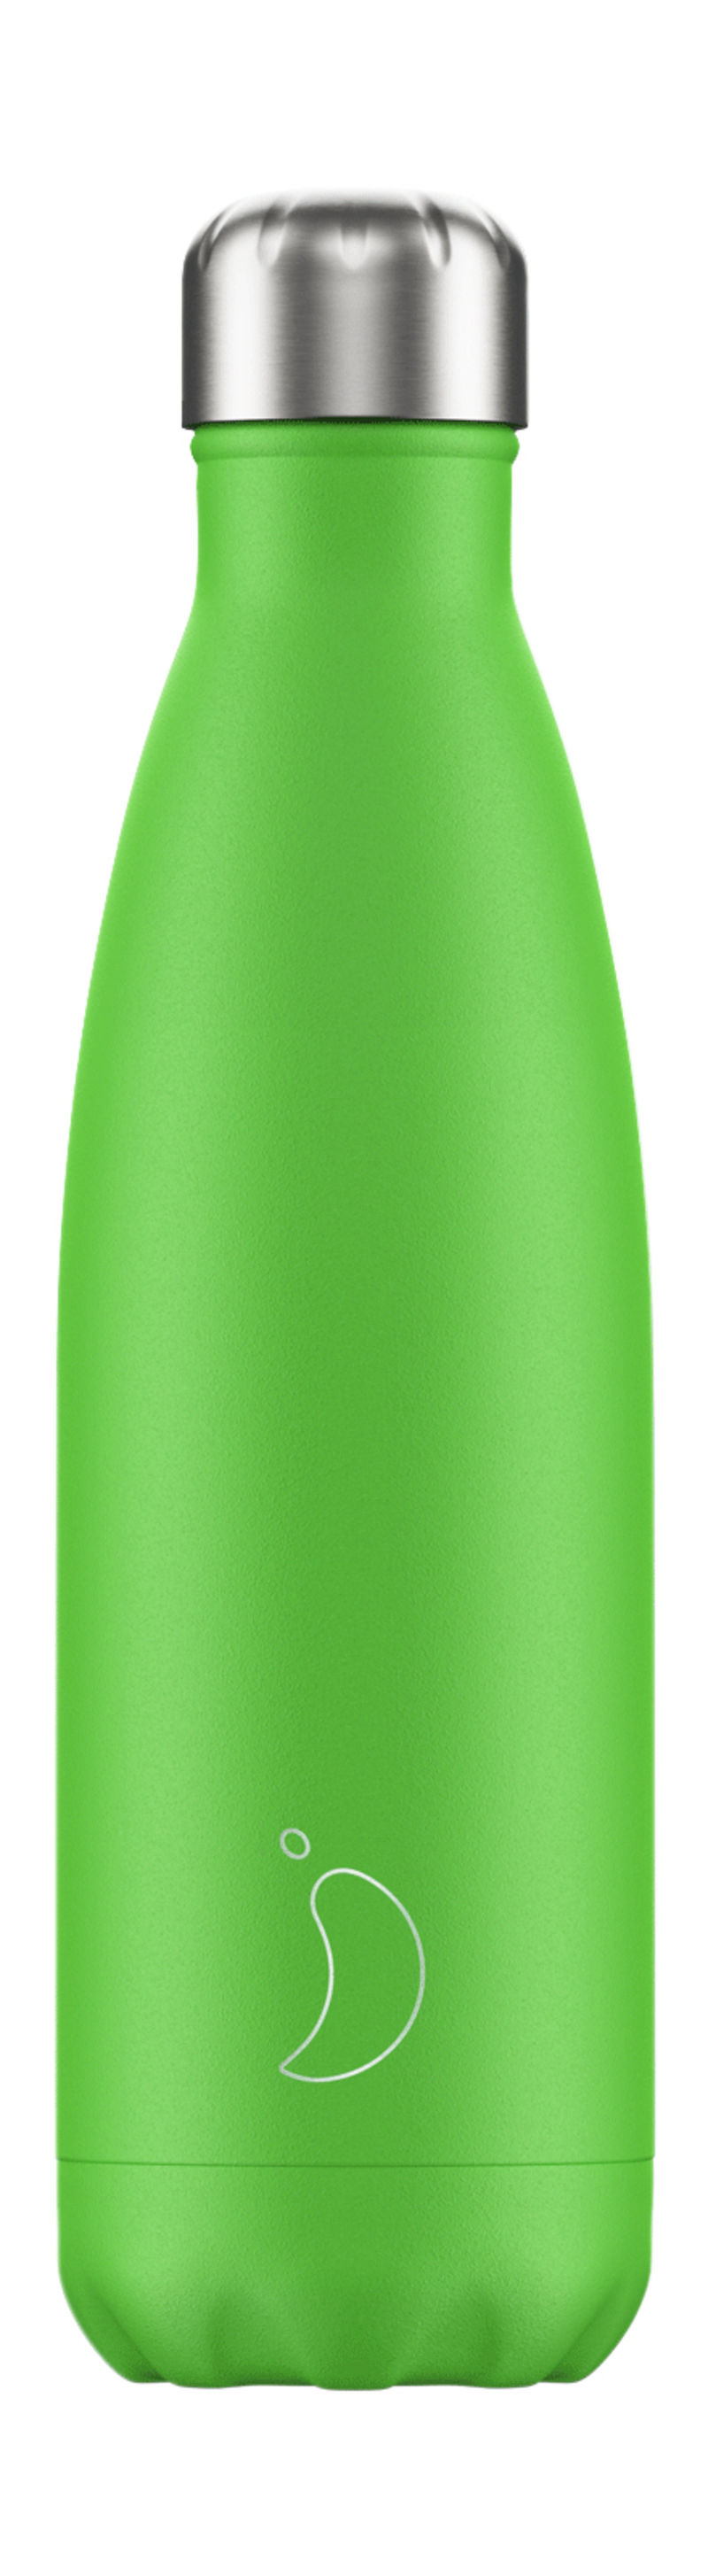 Botella Inox Verde Neon 500ml -